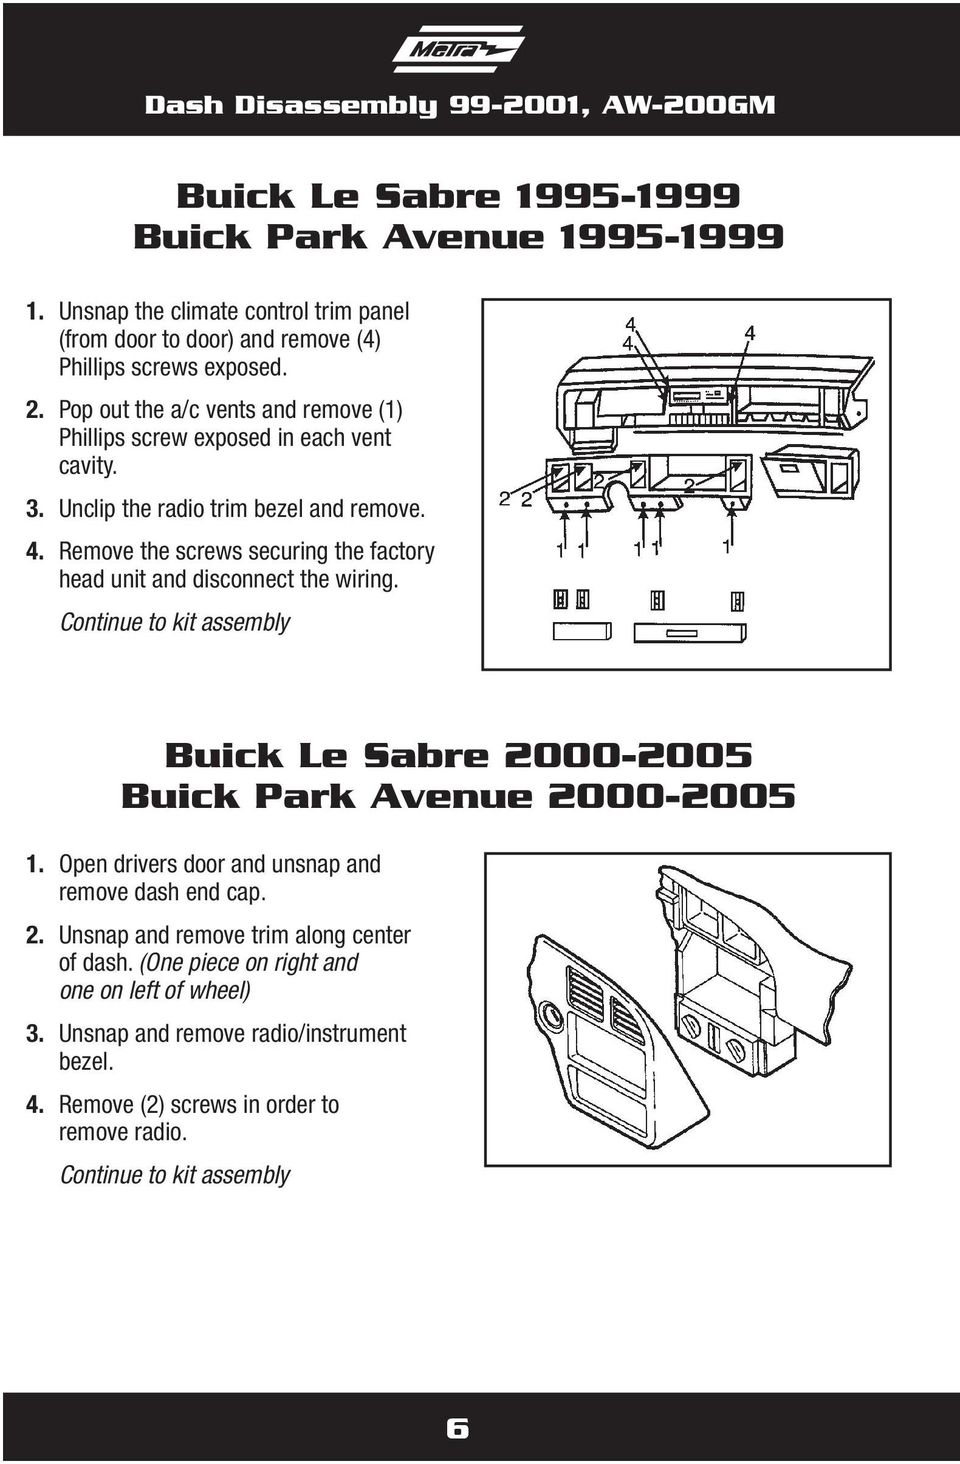 Remove the screws securing the factory head unit and disconnect the wiring. Buick Le Sabre 2000-2005 Buick Park Avenue 2000-2005 1.